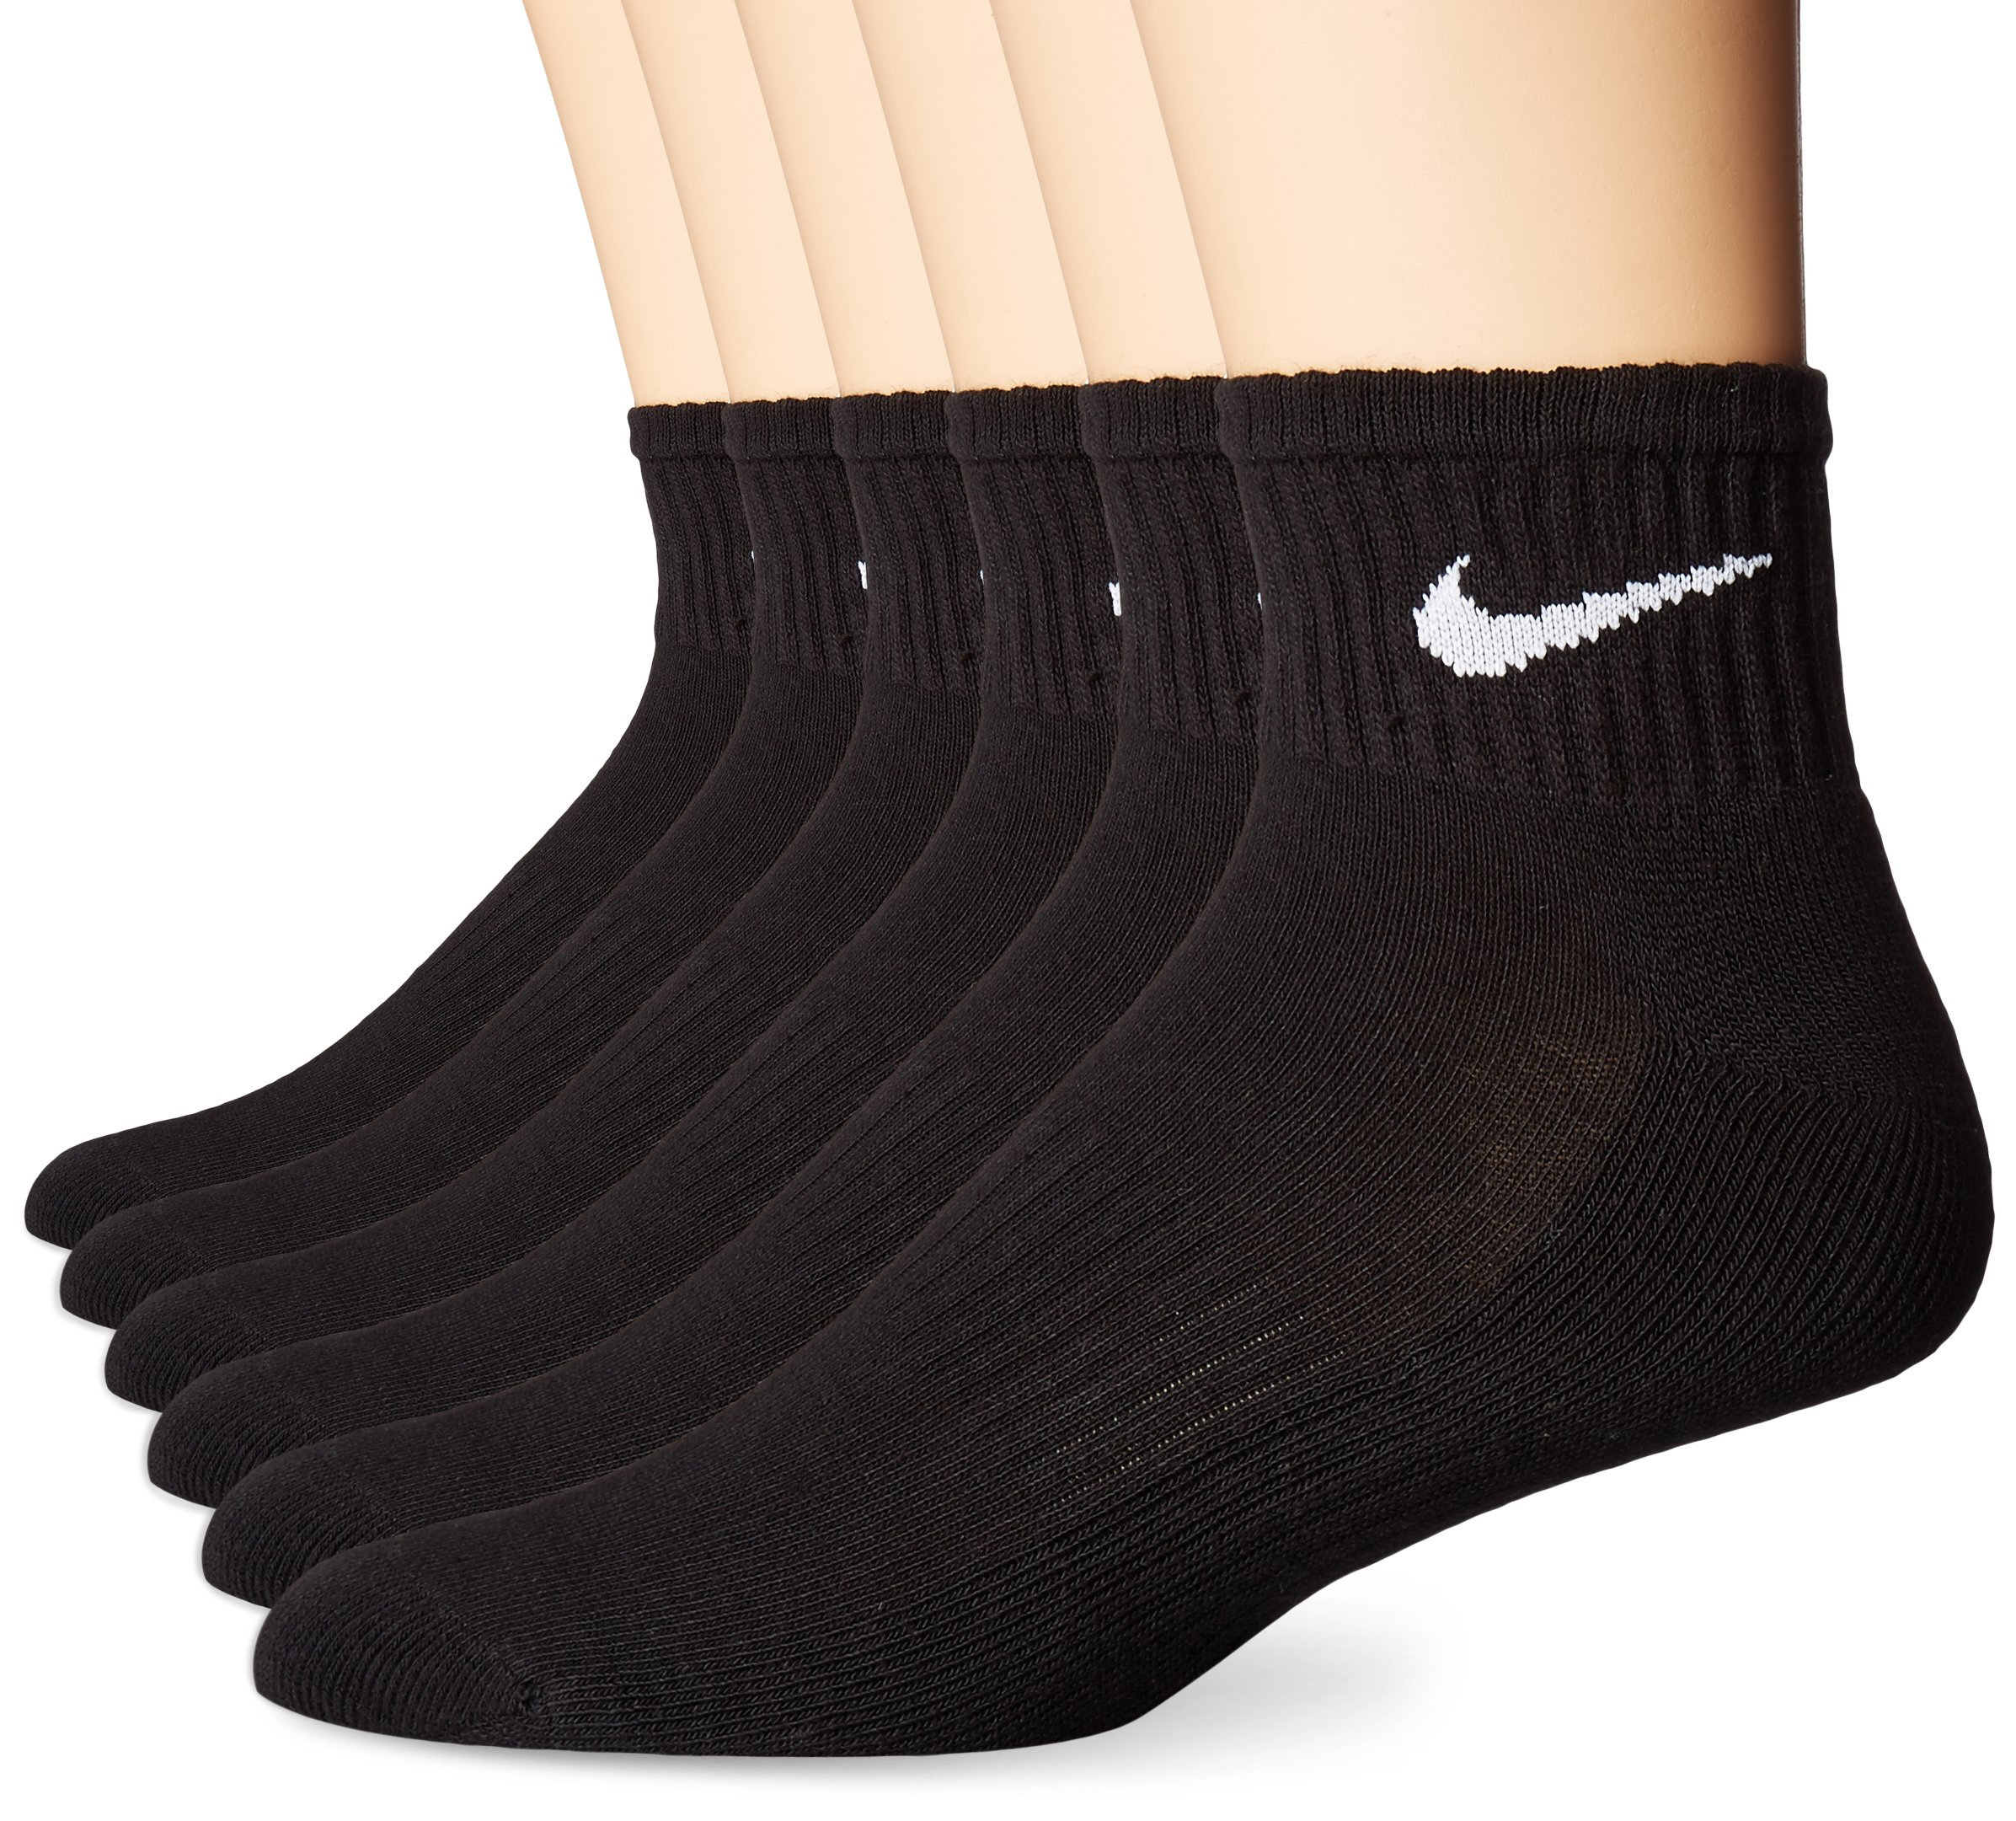 NIKE Unisex Performance Cushion Quarter Socks with Bag (6 Pairs), Black/White, Large